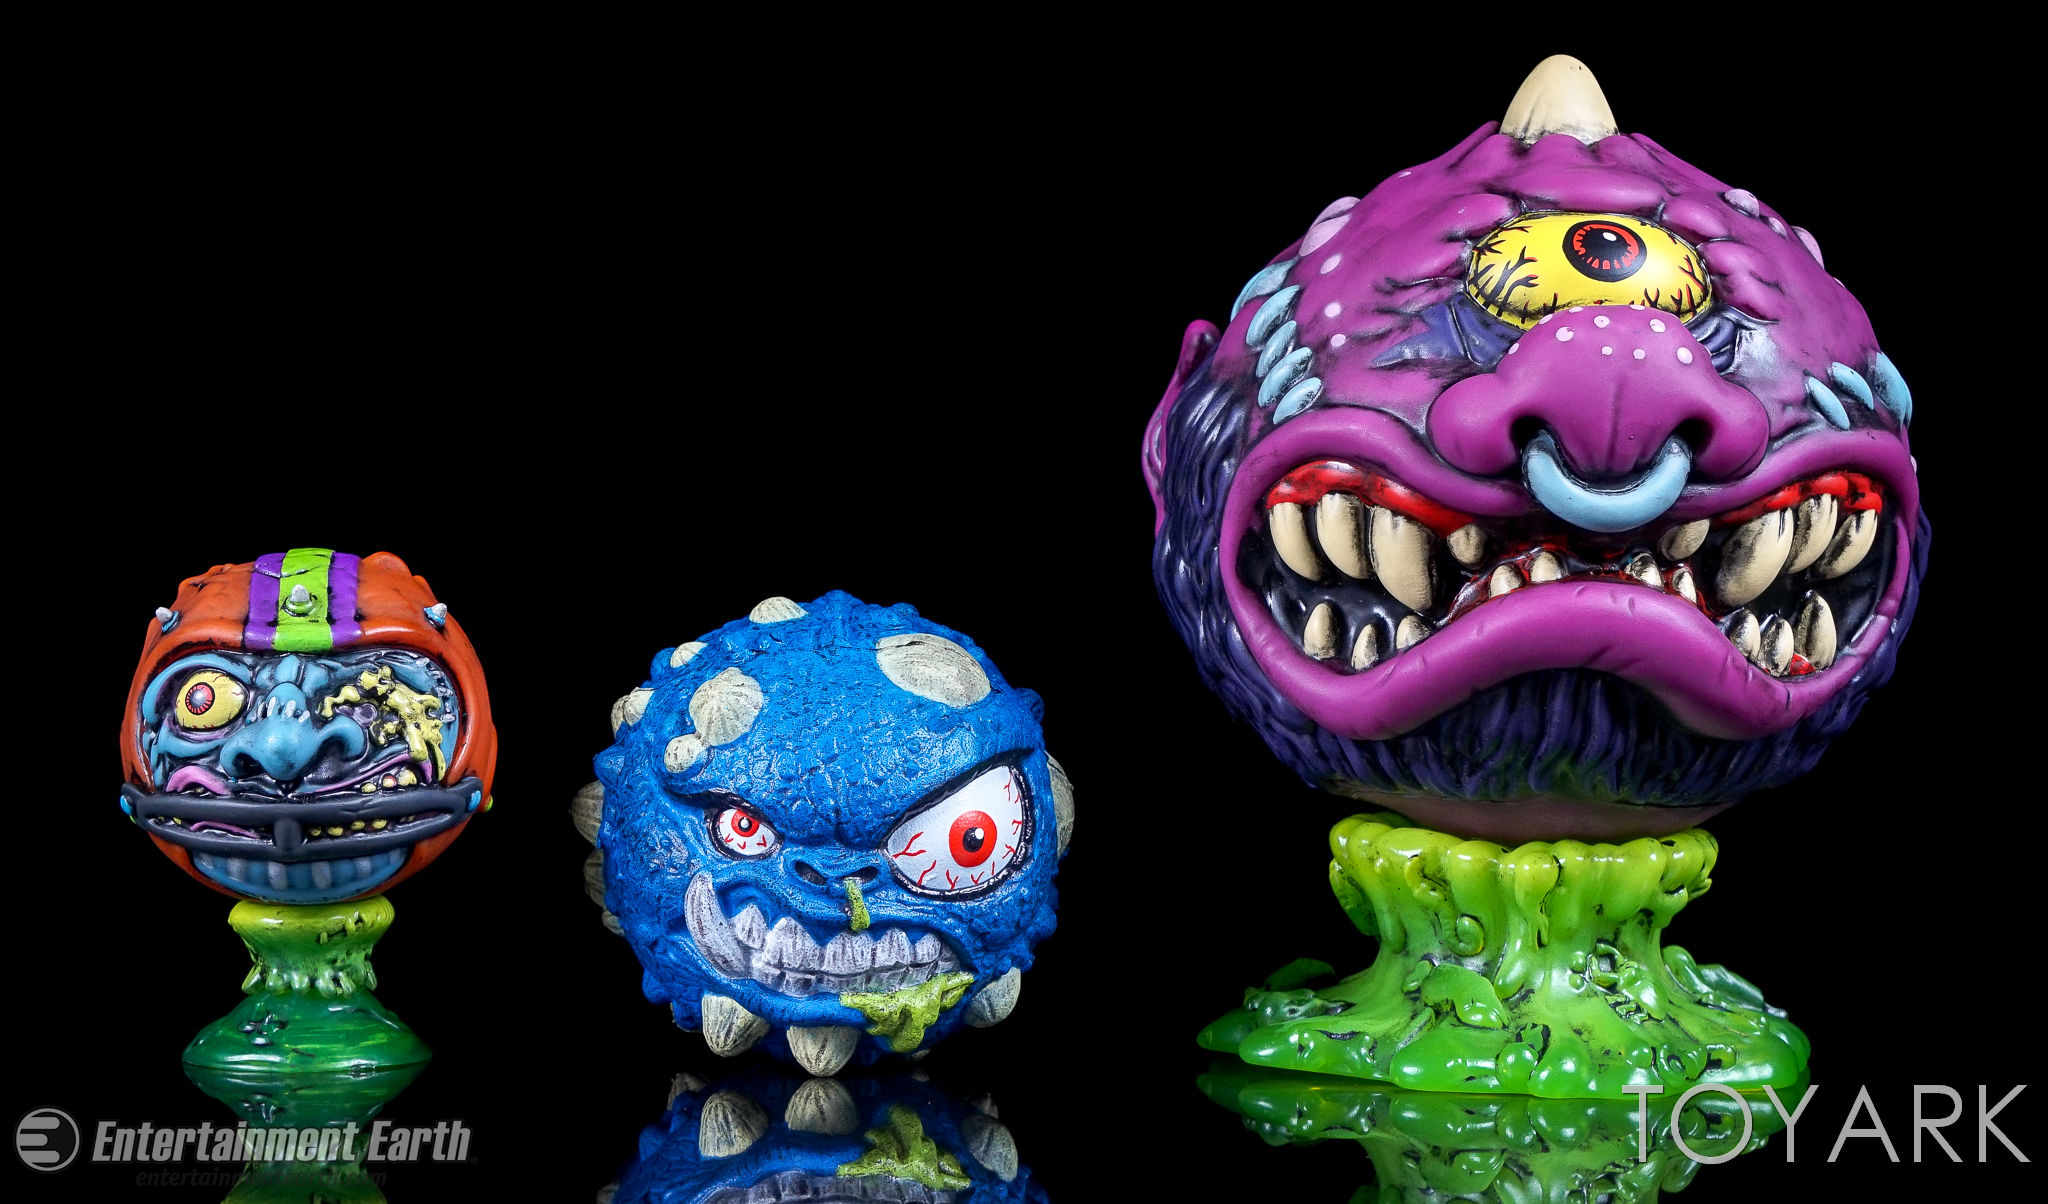 http://news.toyark.com/wp-content/uploads/sites/4/2017/02/Kidrobot-Madballs-Blind-Box-063.jpg